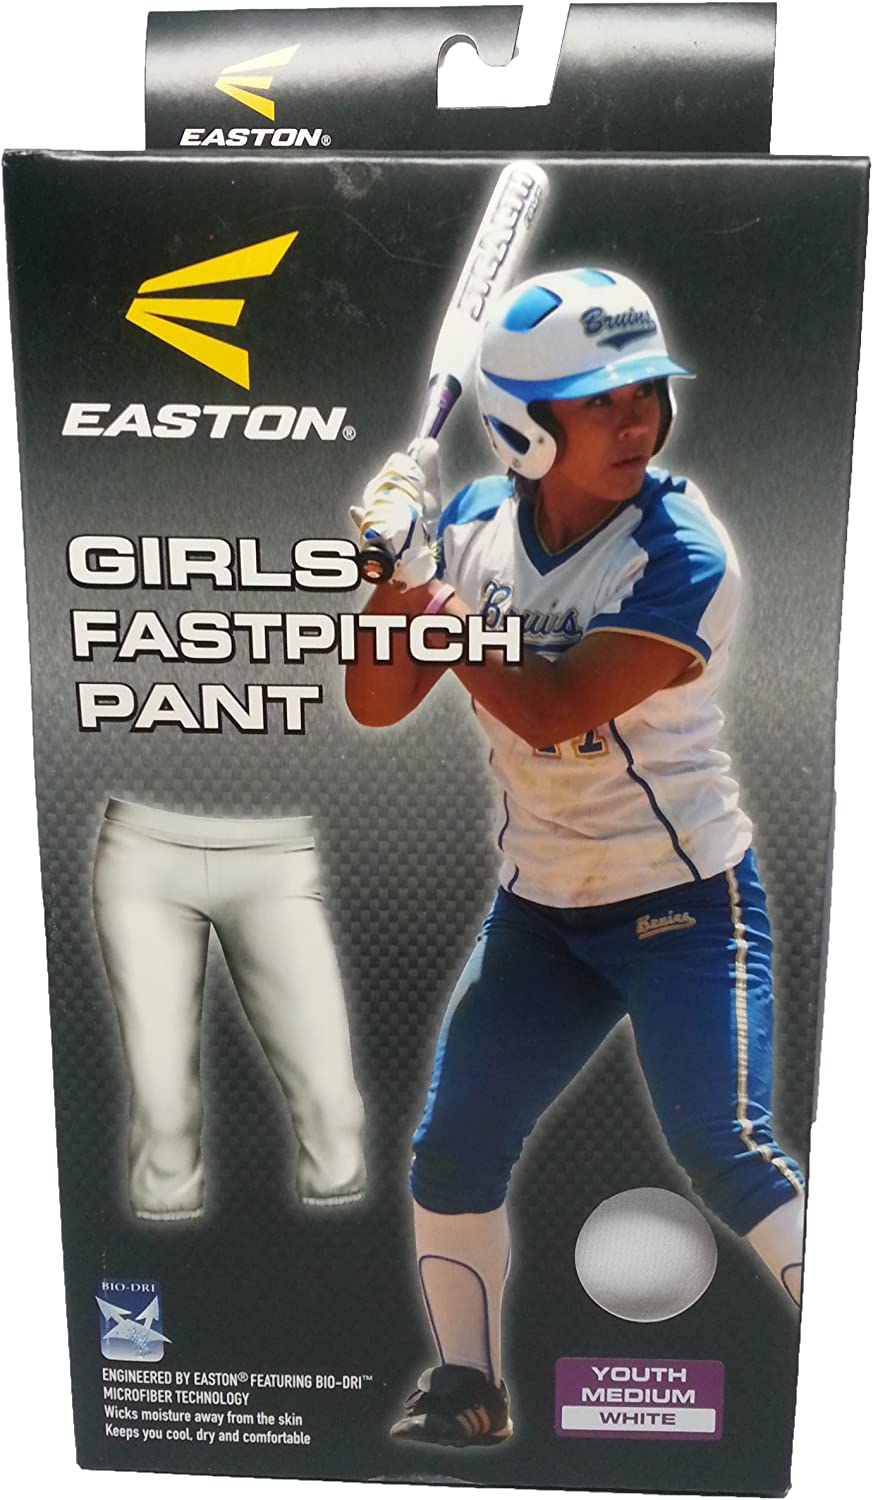 2020 Low-Rise Waistband With Draw Cord EASTON ZONE Fastpitch Softball Pant 2020 Girls Sizing Sewn-Down Set-In Back Pockets Womens